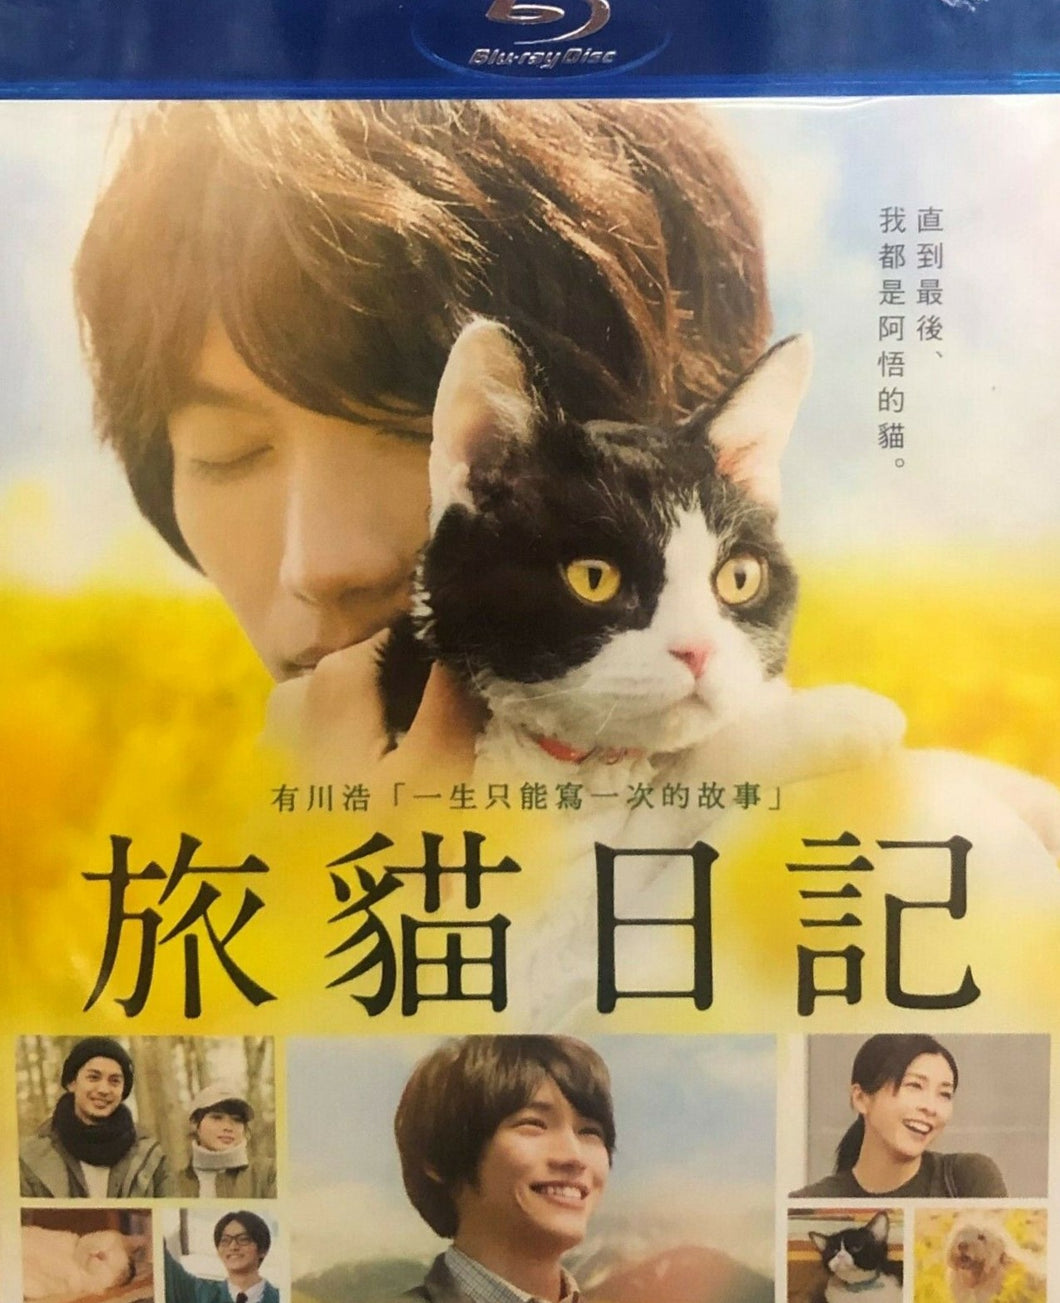 The Travelling Cat Chronicles 旅貓日記 2018 (Japanese Movie) BLU-RAY with English Subtitles (Region A)